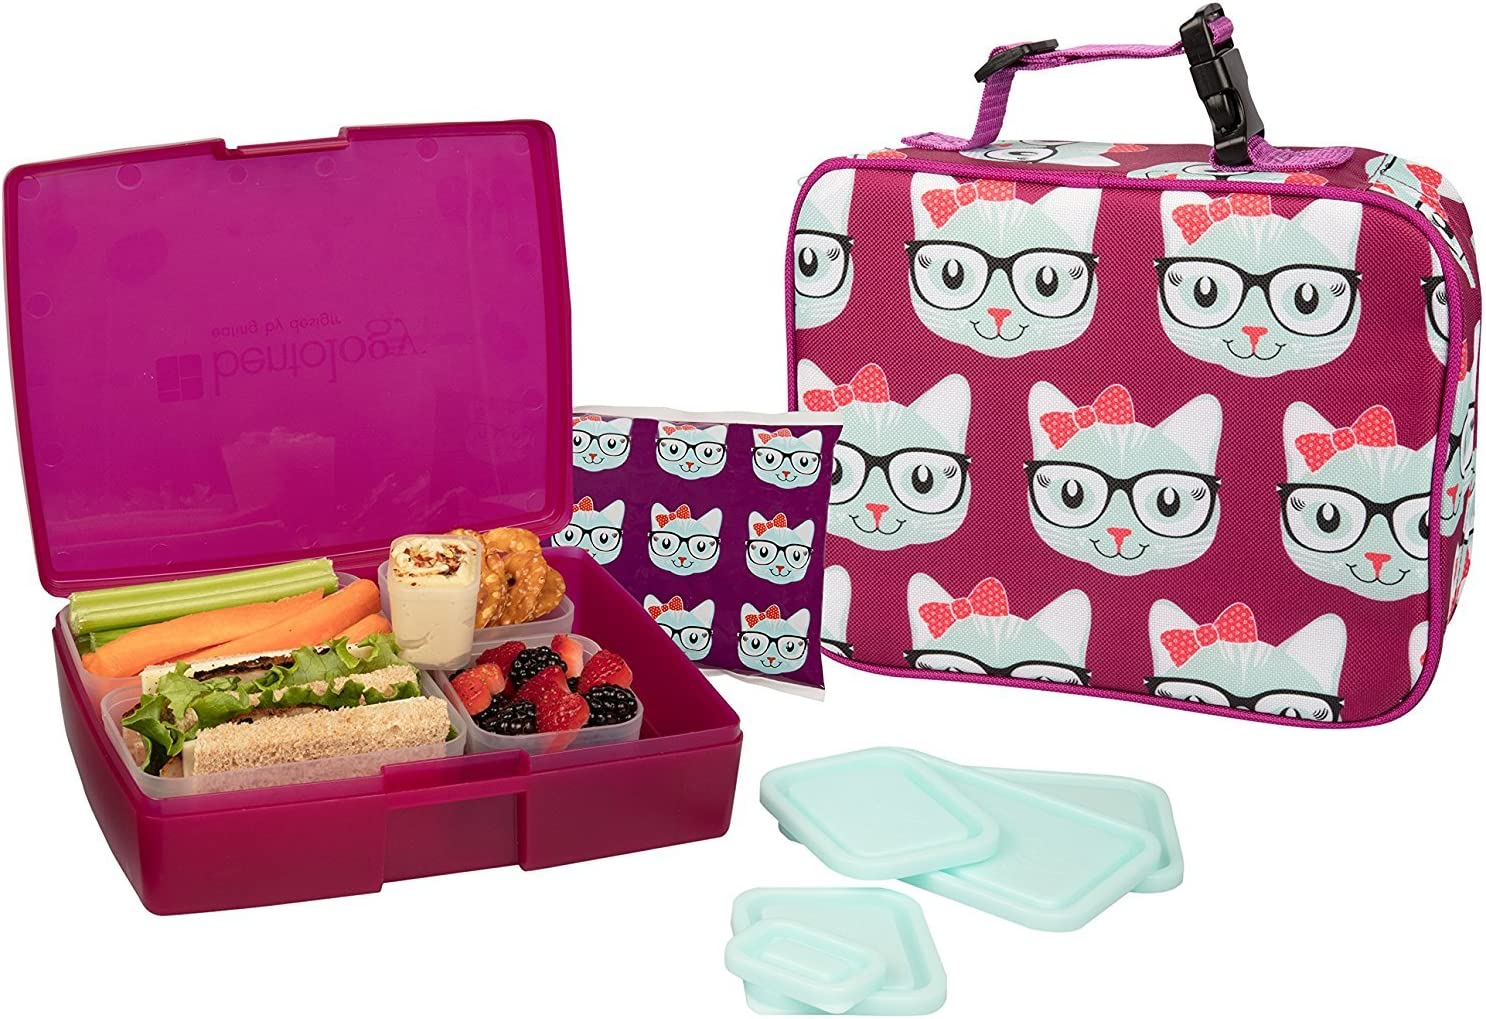 Bentology Lunch Bag and Box Set for Kids - Girls Insulated Lunchbox Tote, Bento Box, 5 Containers and Ice Pack - 9 Pieces - Kitty